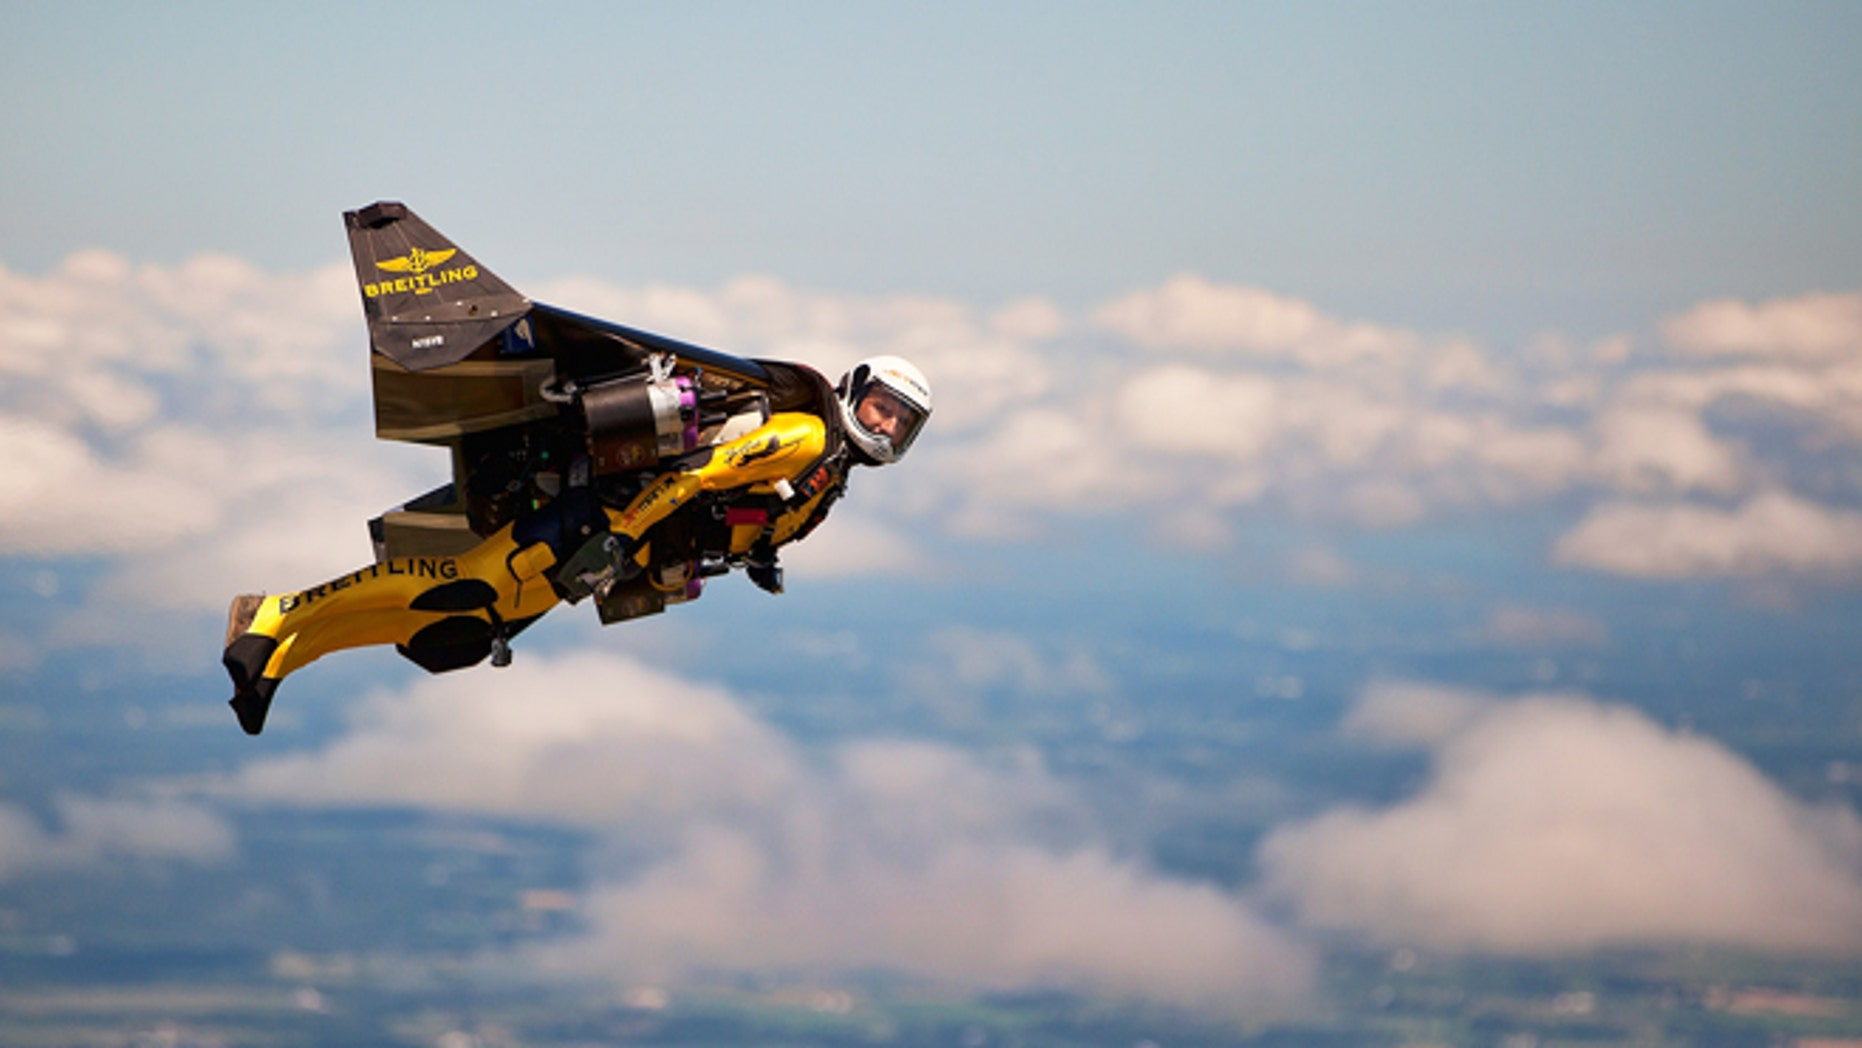 """July 29, 2013: Swiss adventurer Yves Rossy, also known as """"Jetman,"""" flies in his carbon-Kevlar jetwing with four engines for during an event for reporters over Appleton, Wis."""